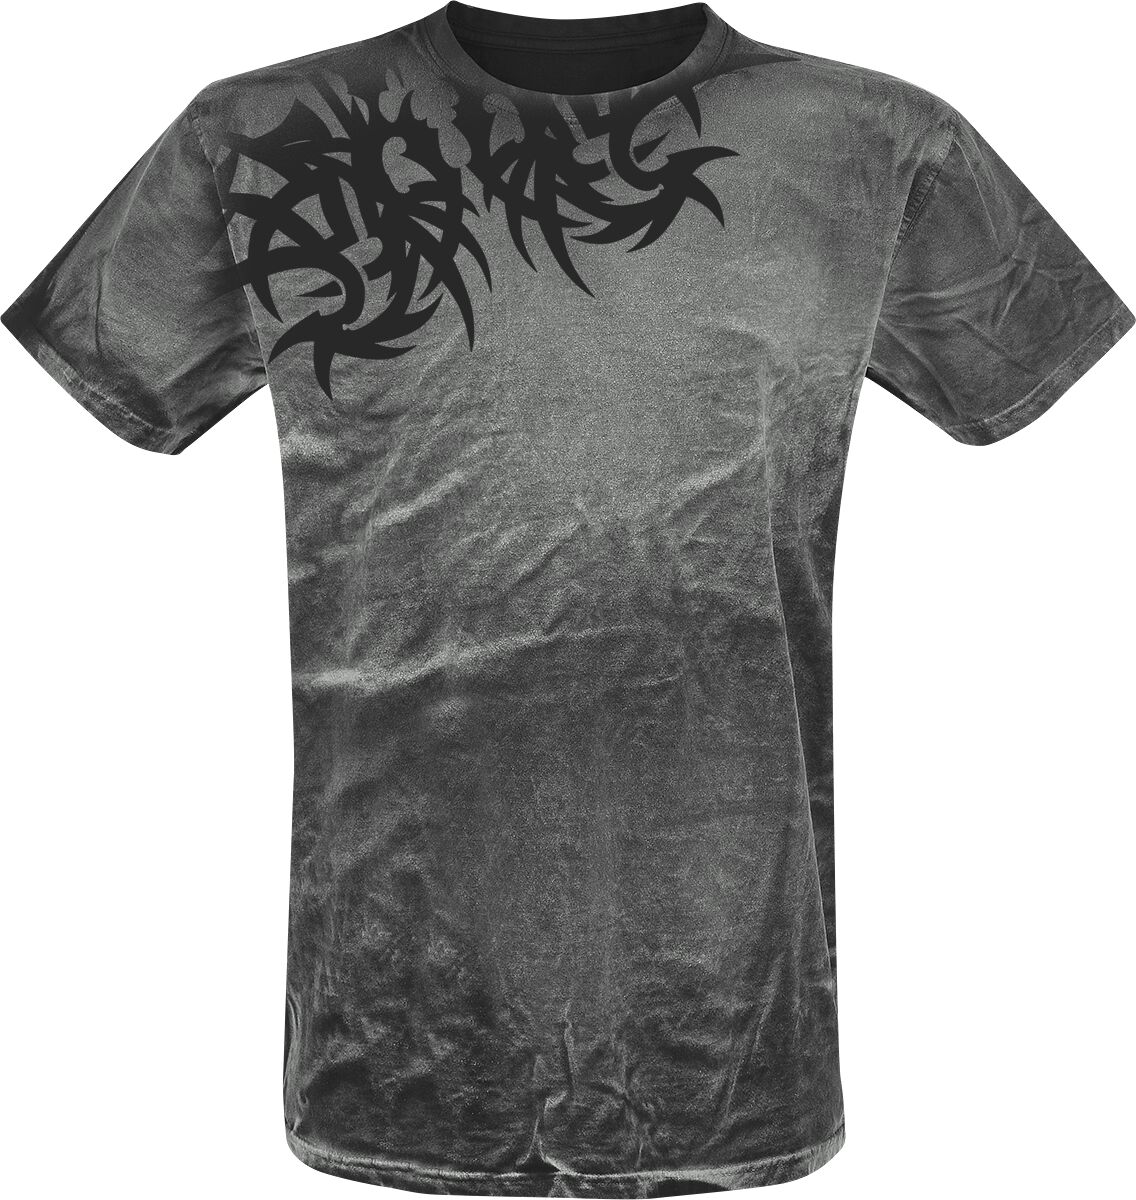 Image of   Outer Vision Spine Tattoo T-Shirt grå